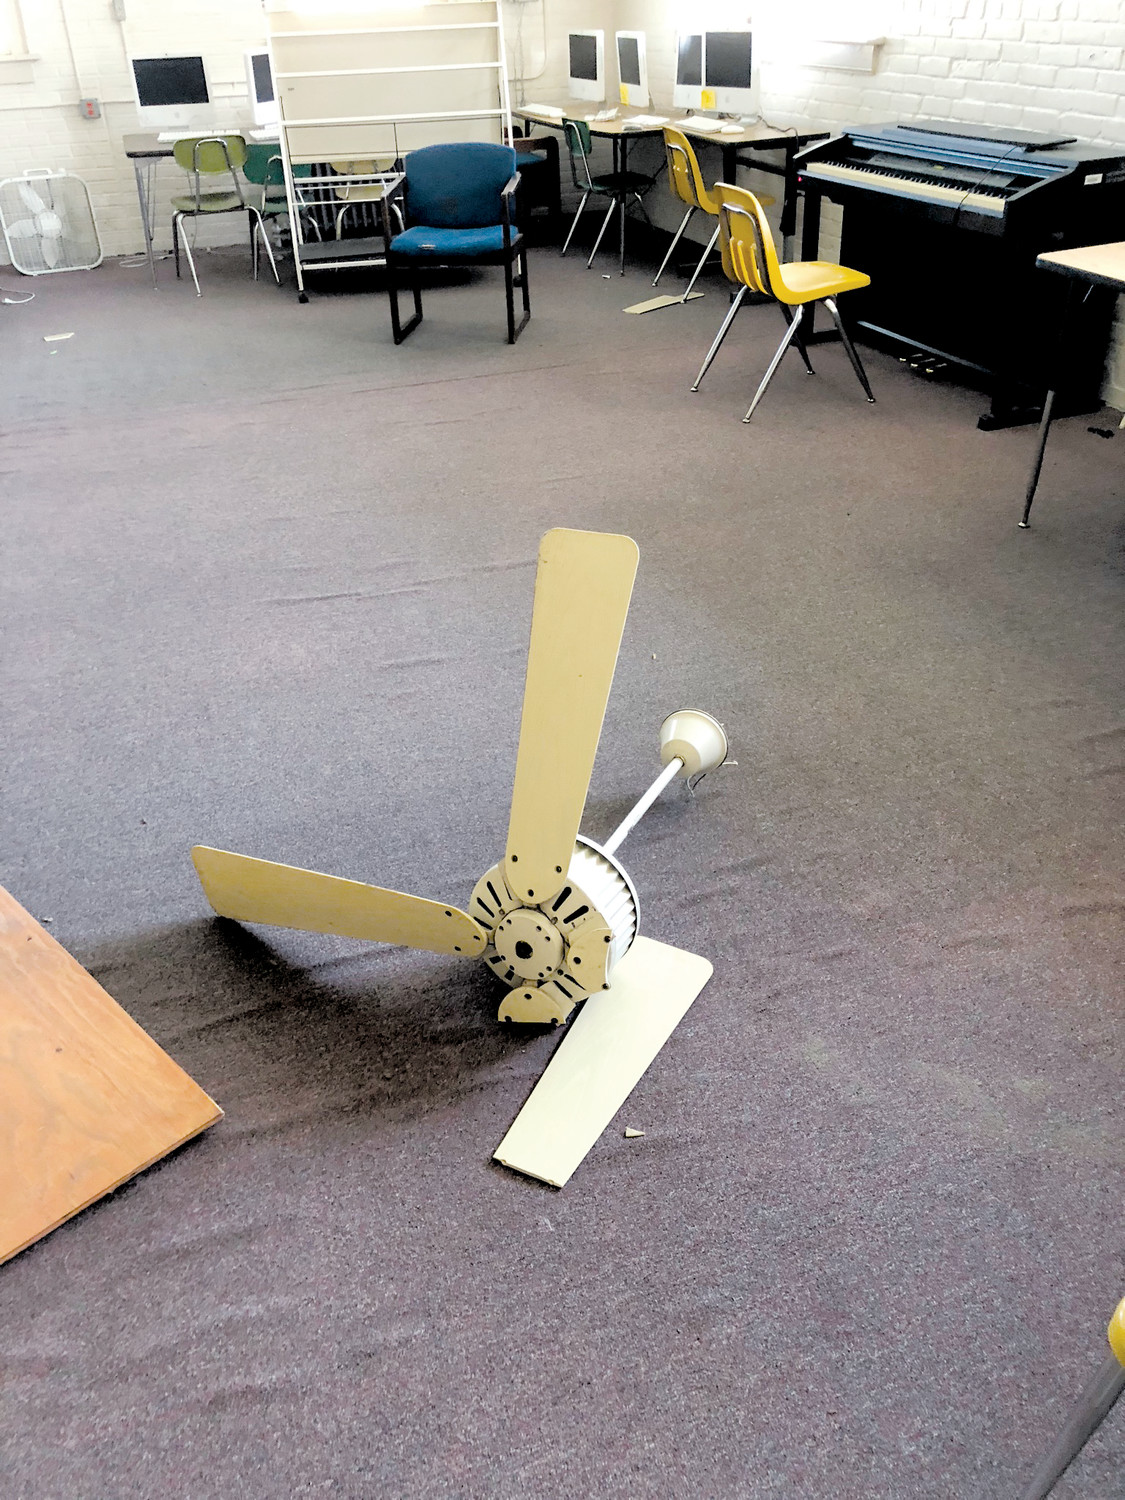 This ceiling fan fell over the weekend in a classroom at Erwin Elementary School. Officials are concerned about the condition of the aging facility which they say needs to be replaced.